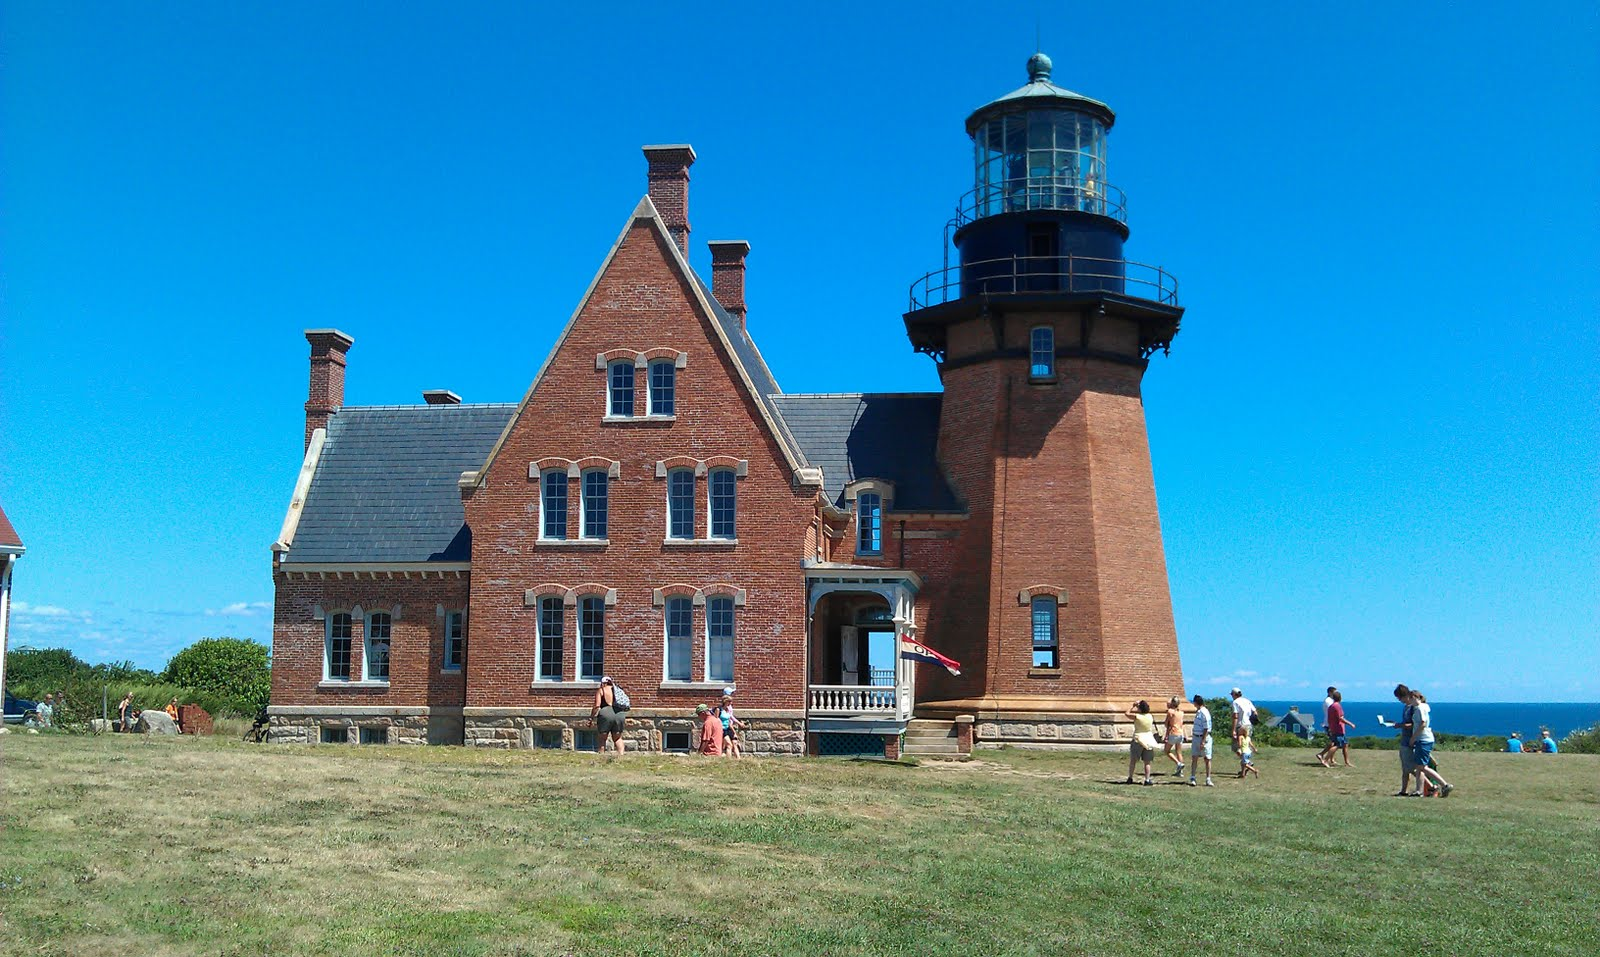 The Block Island Southeast Lighthouse